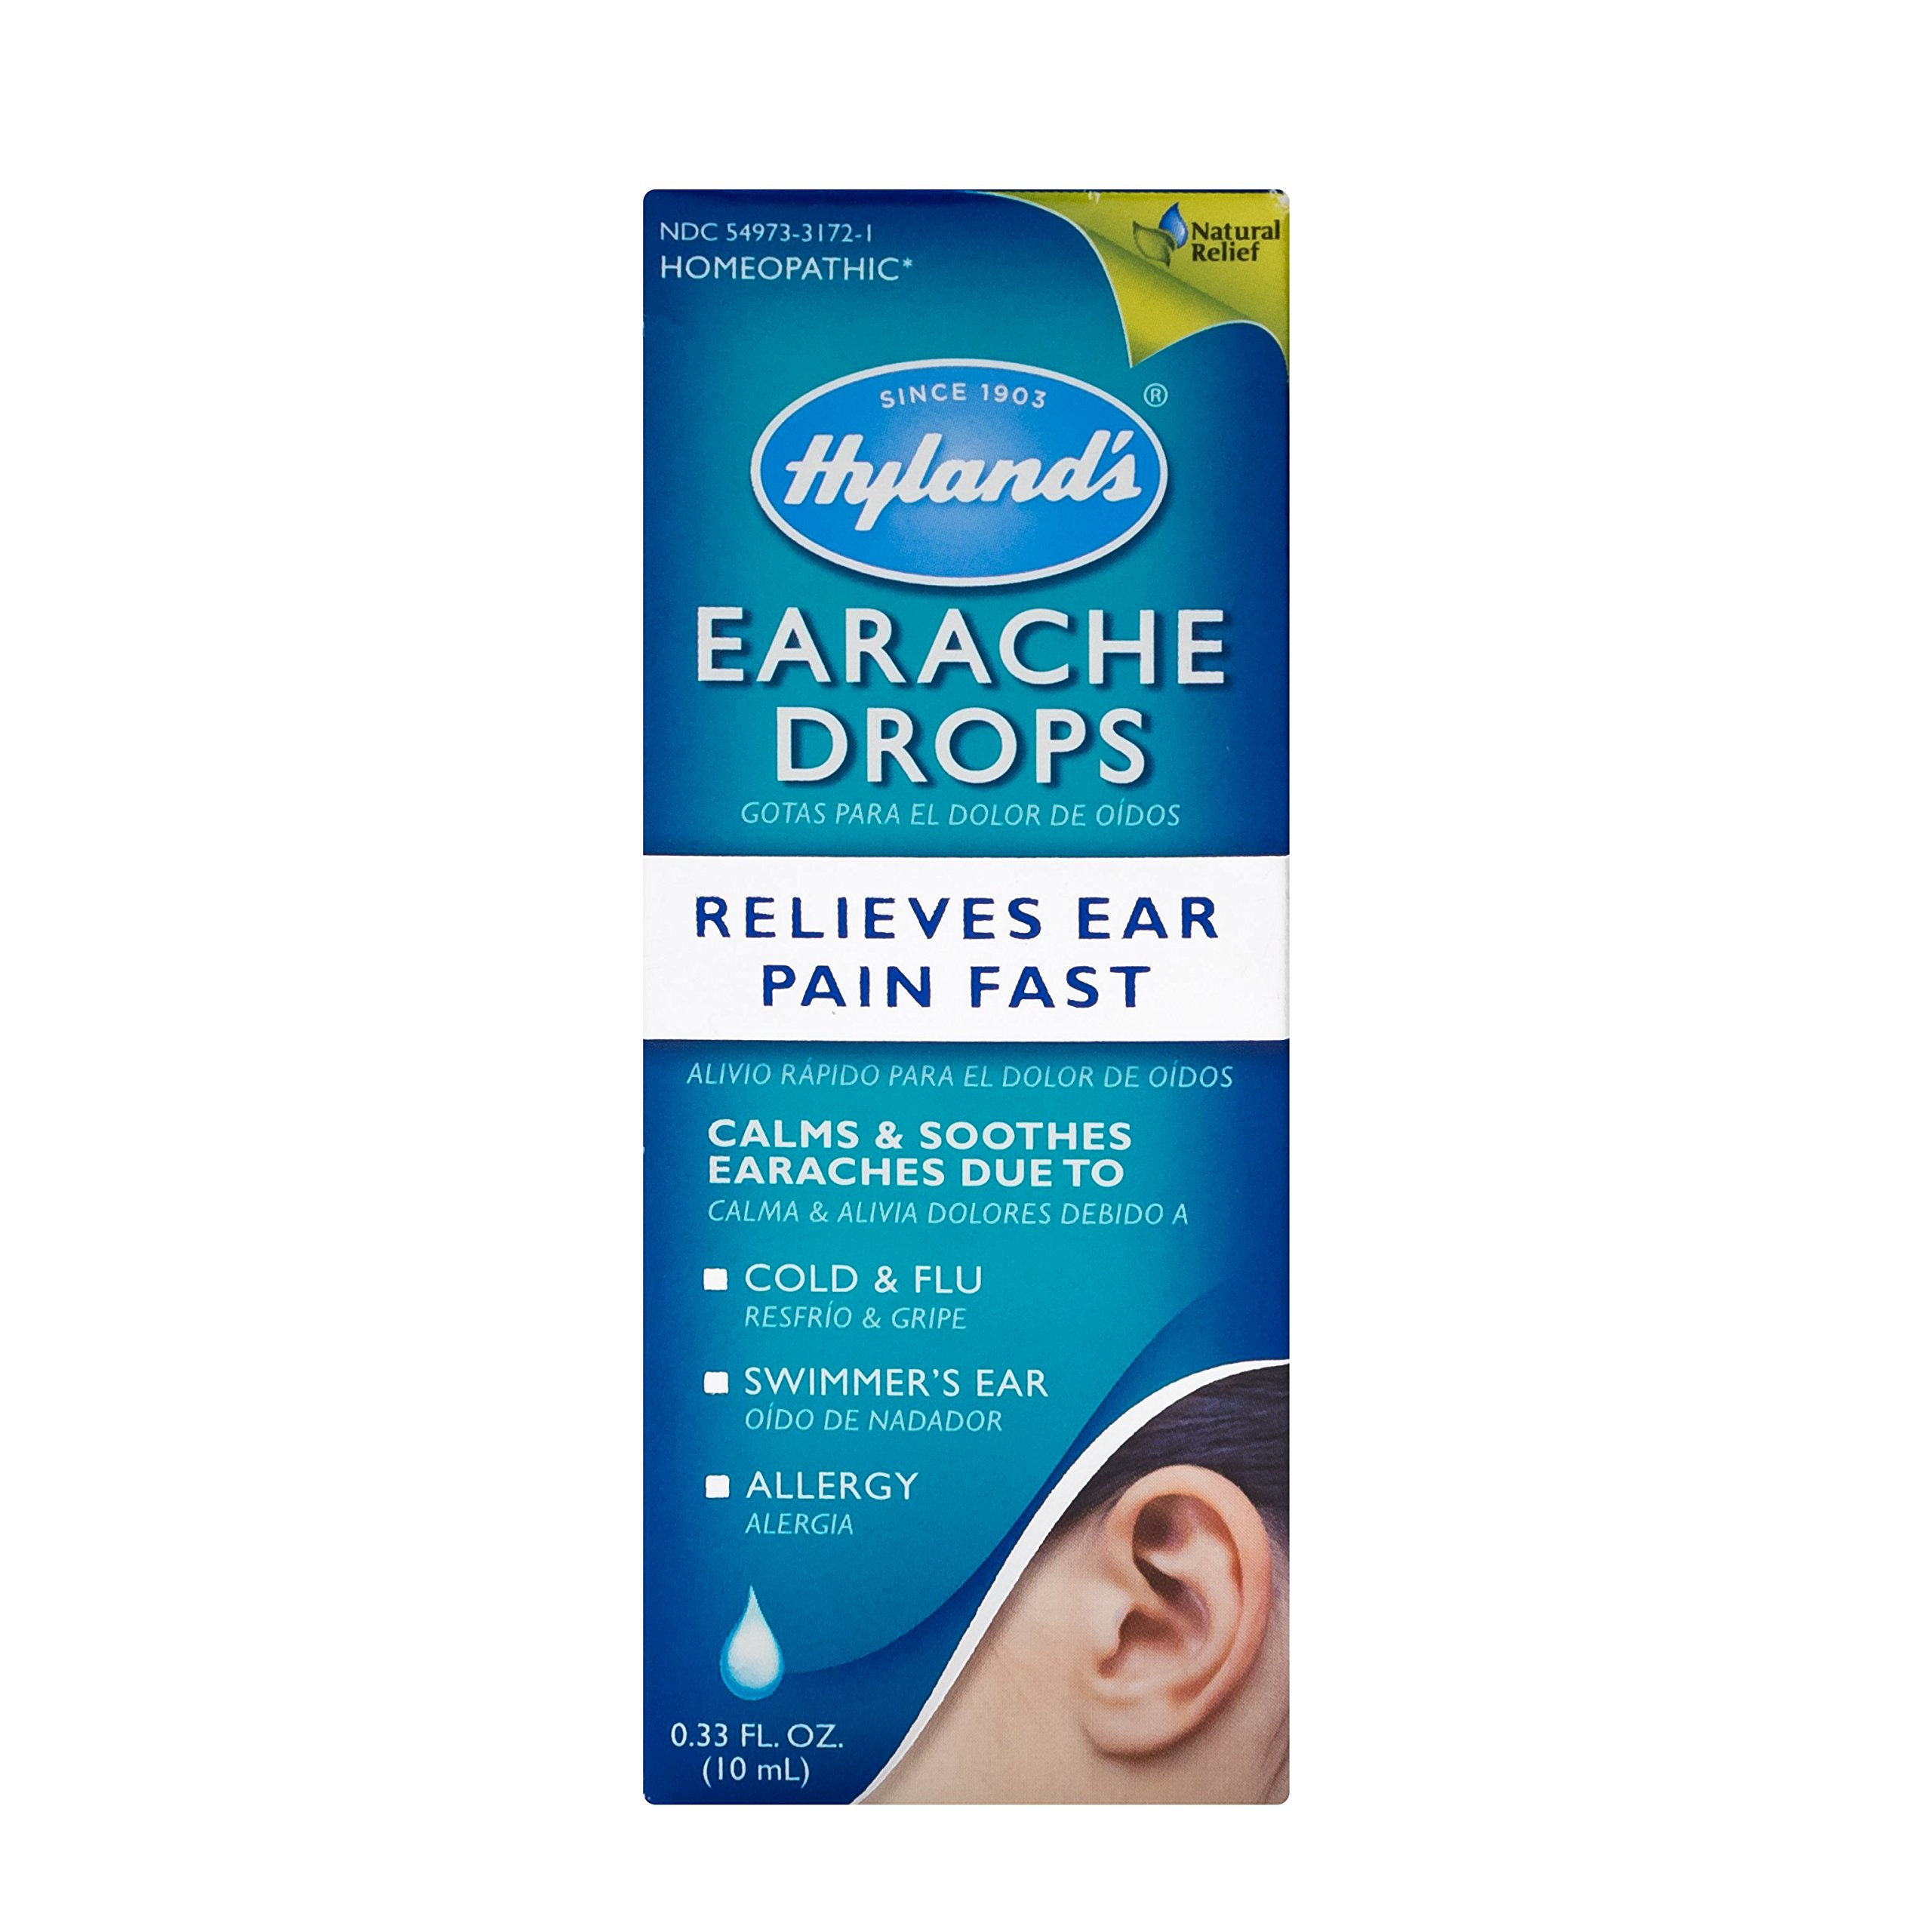 Hyland's Earache Drops, Natural Homeopathic Cold & Flu Earaches, Swimmers Ear and Allergies Relief, 0.33 Ounce